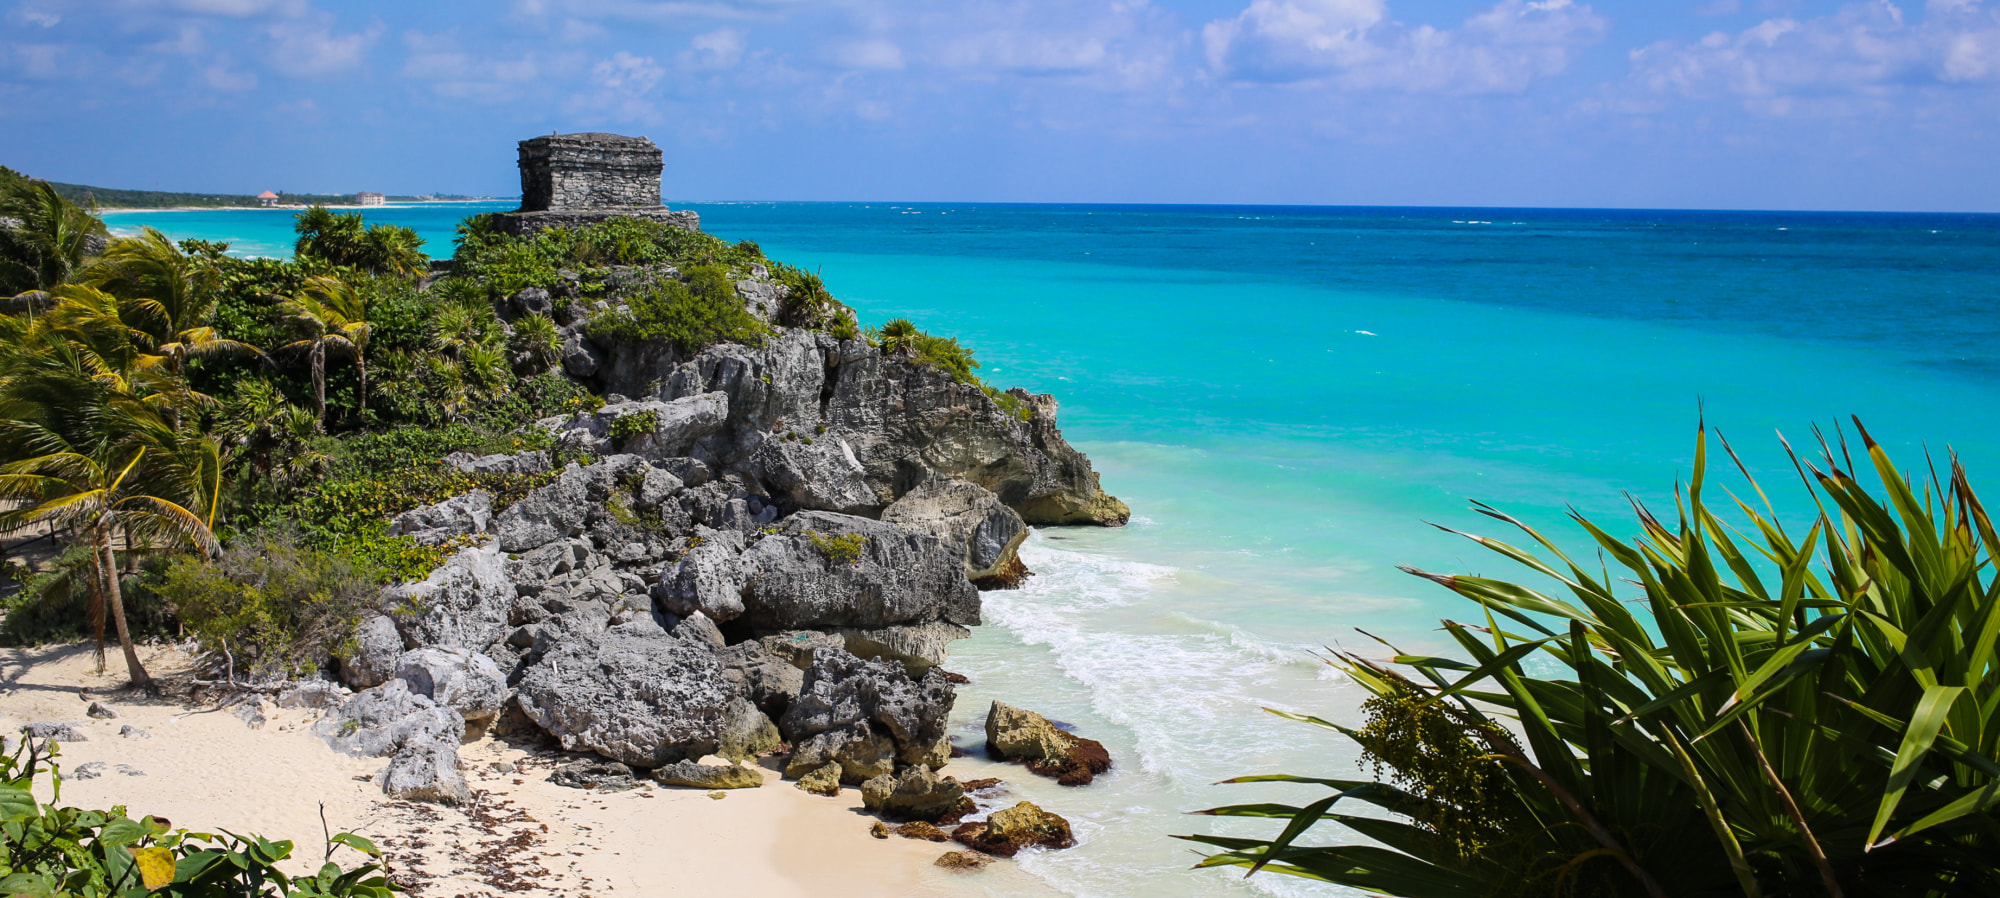 Getting to Tulum, Mexico